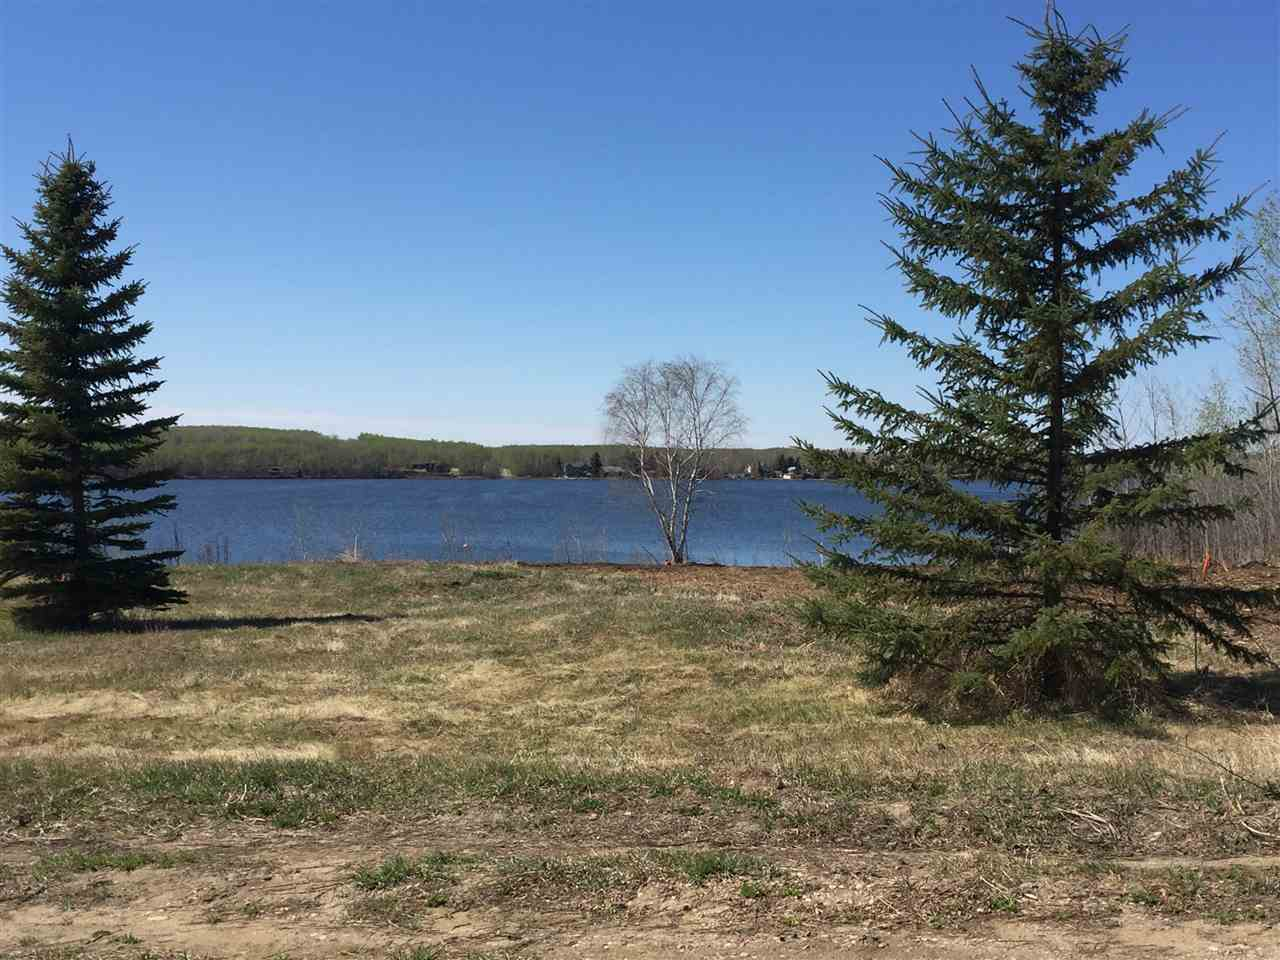 224 46225 Twp Rd 612- Lakeside Village, at $369,900